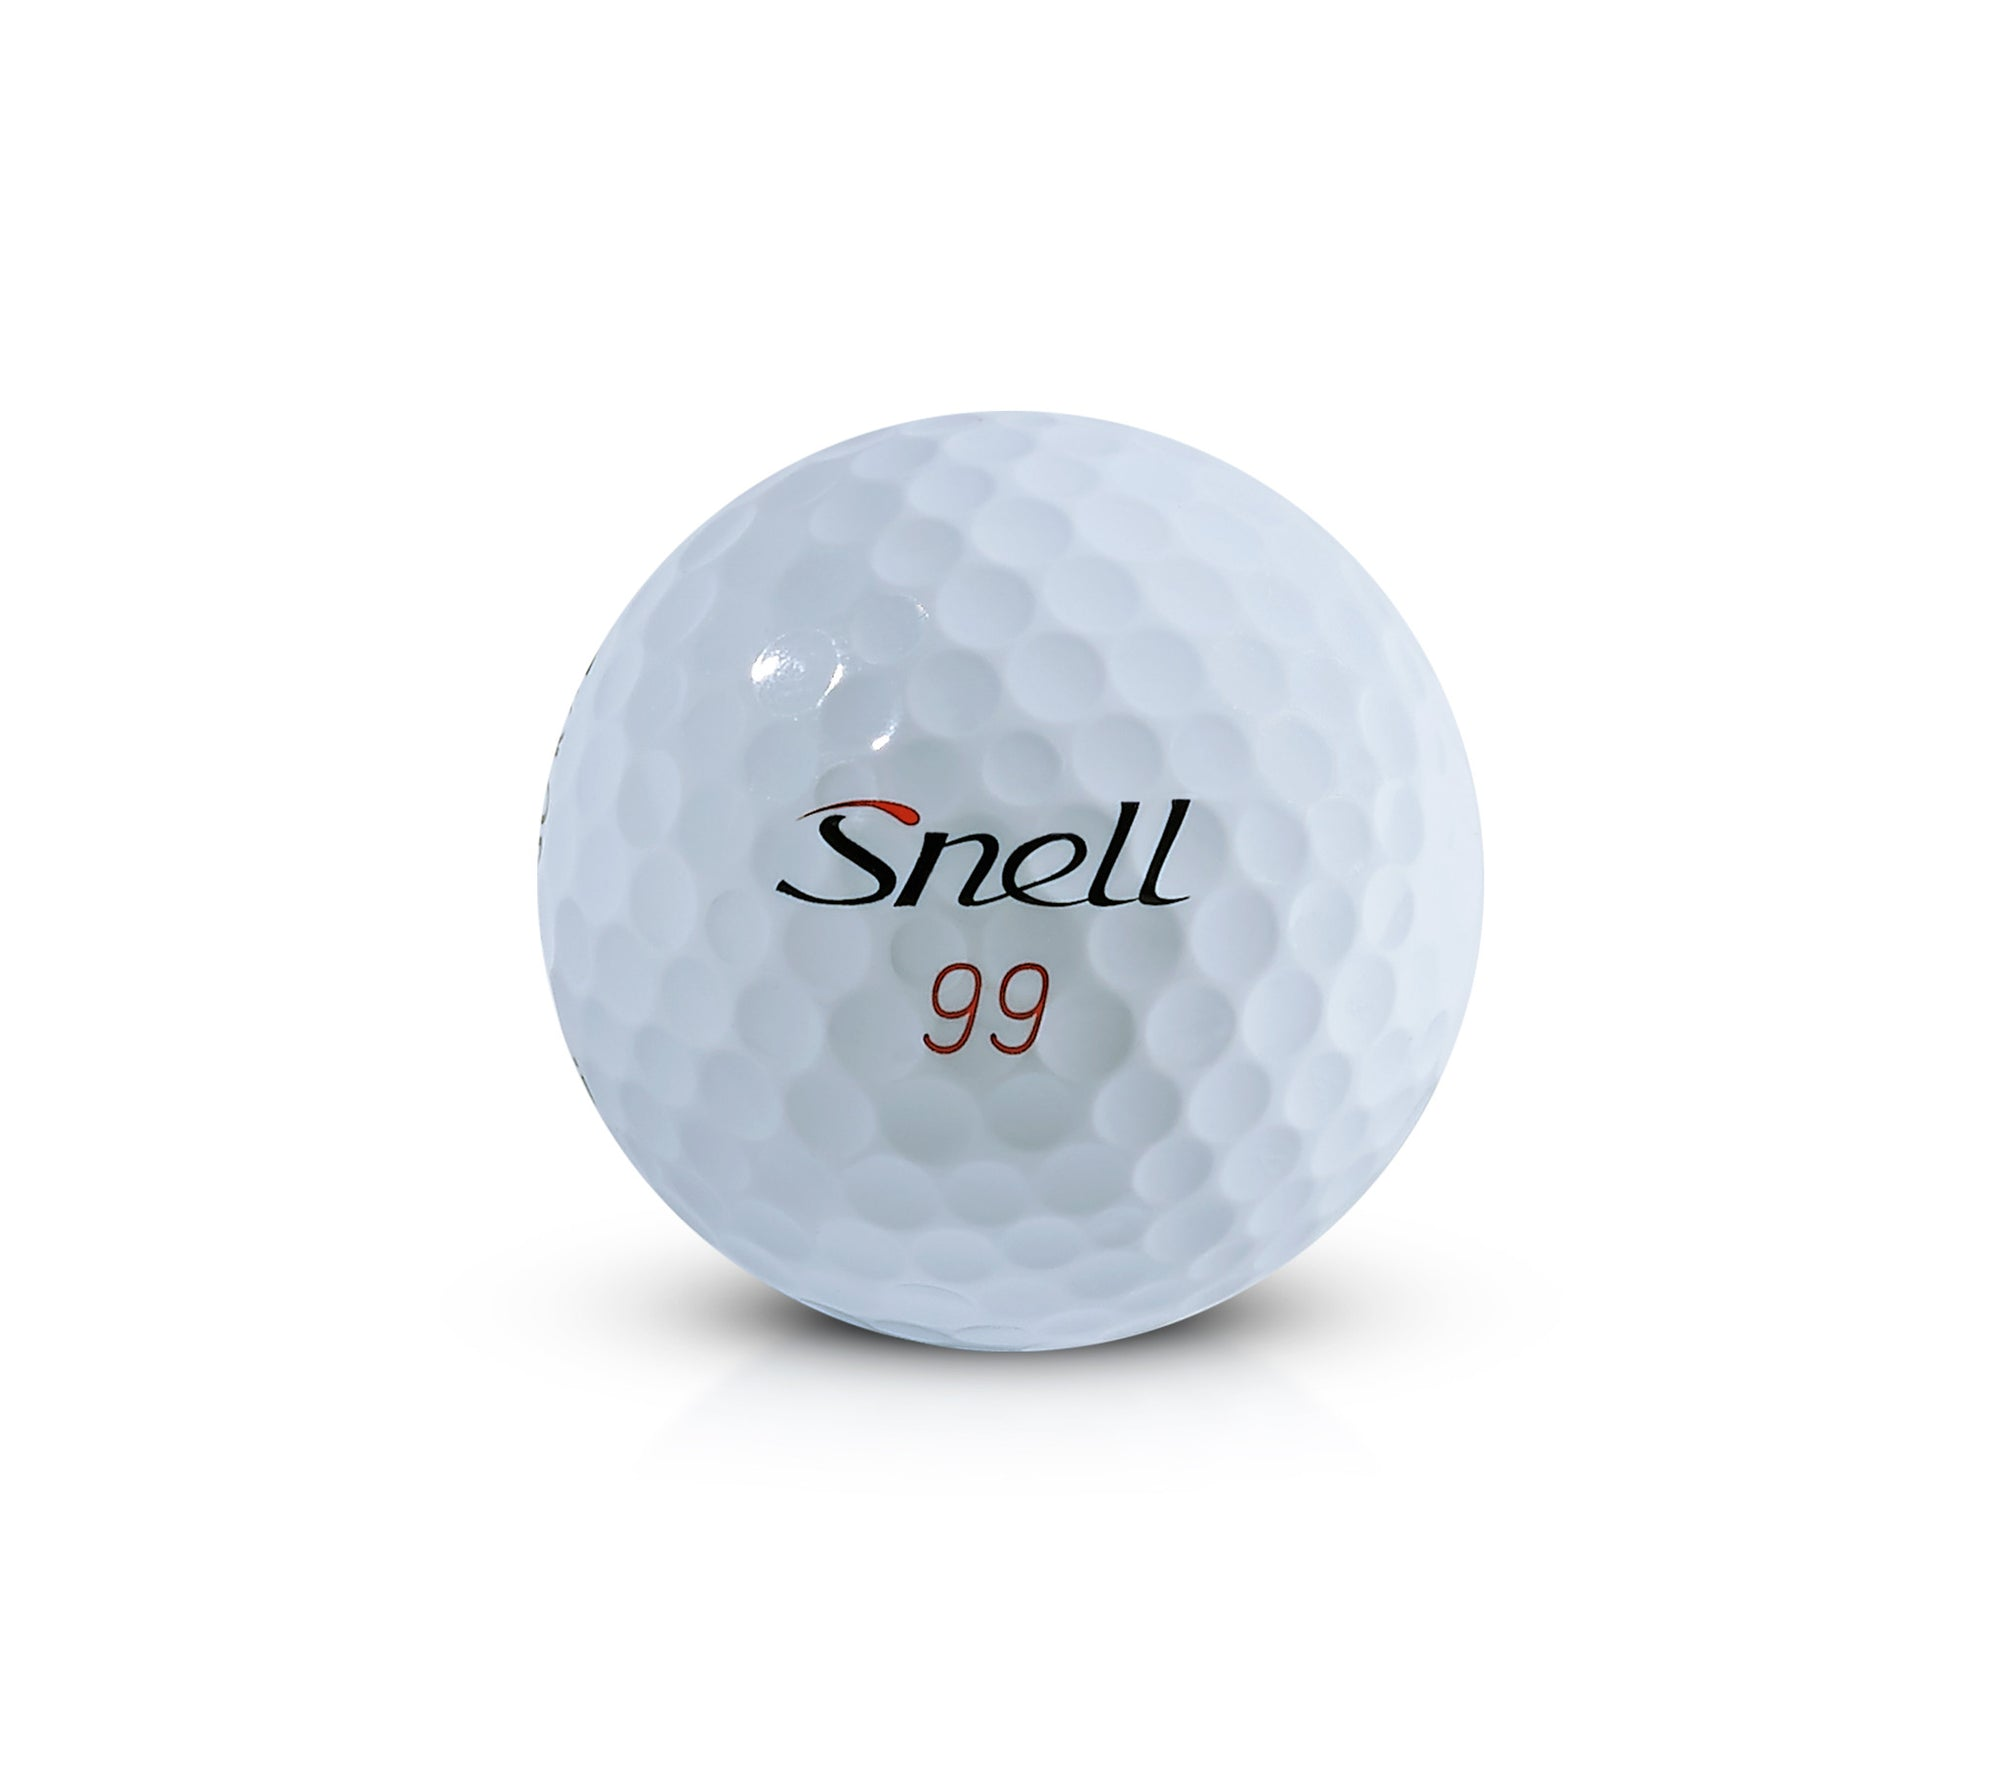 Why are the numbers on golf balls red and black?